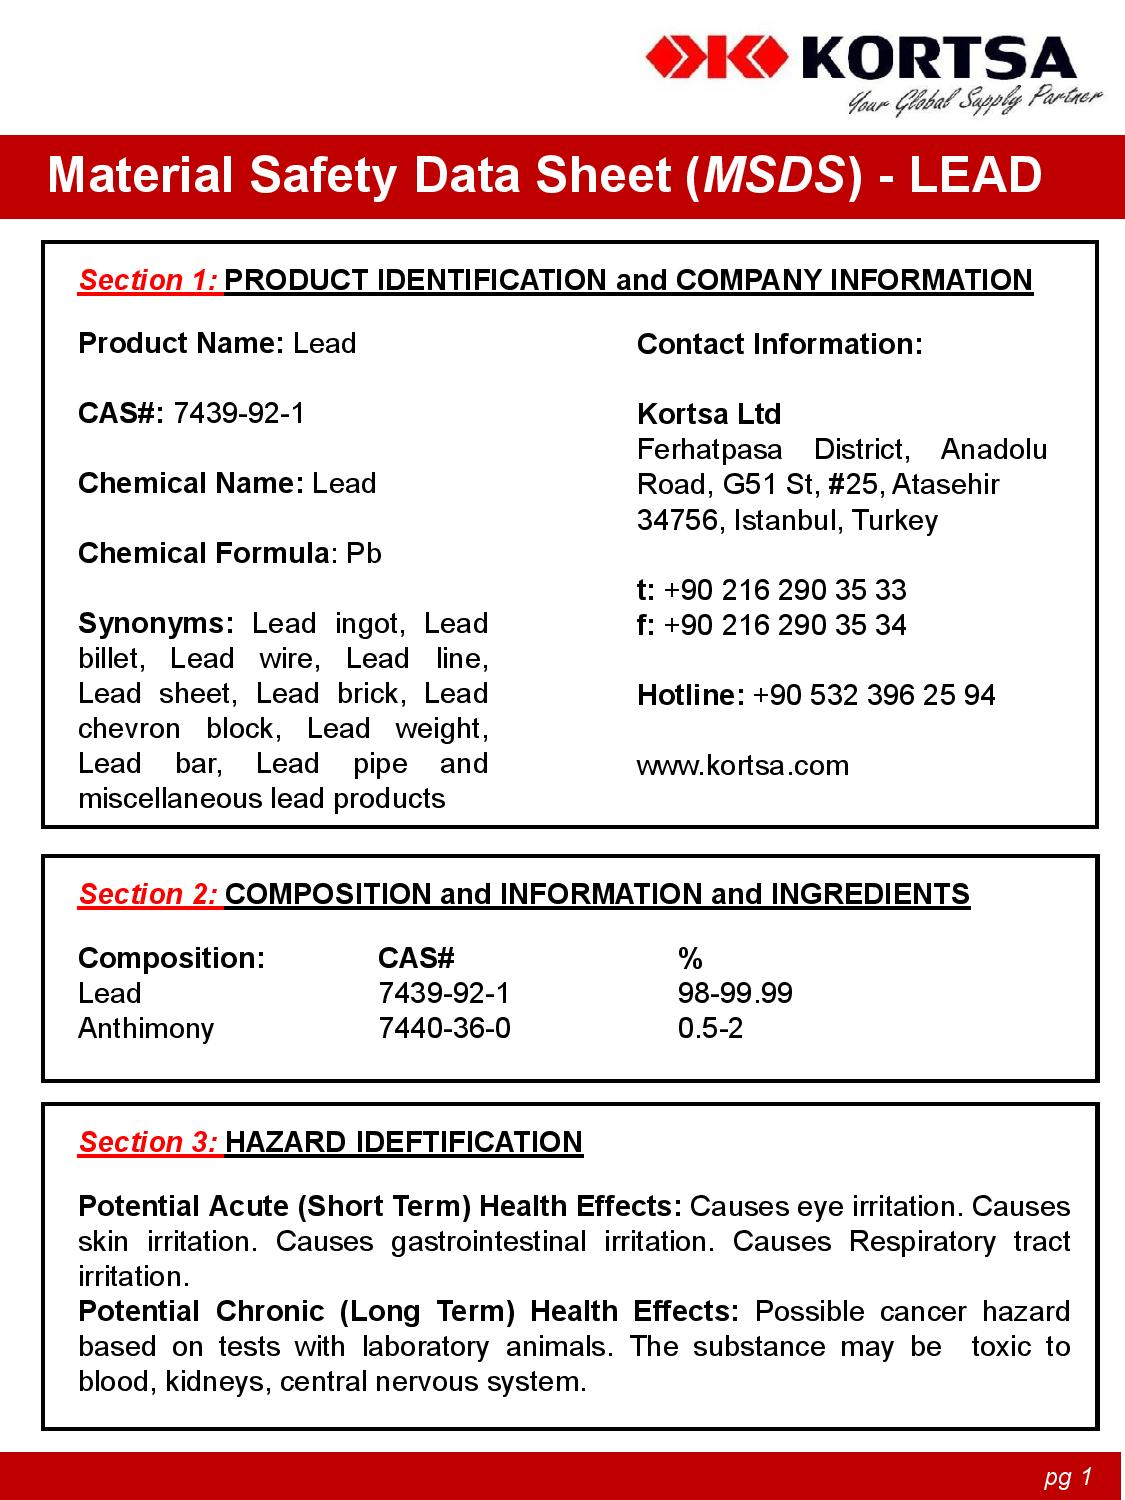 Material Safety Data Sheet image1